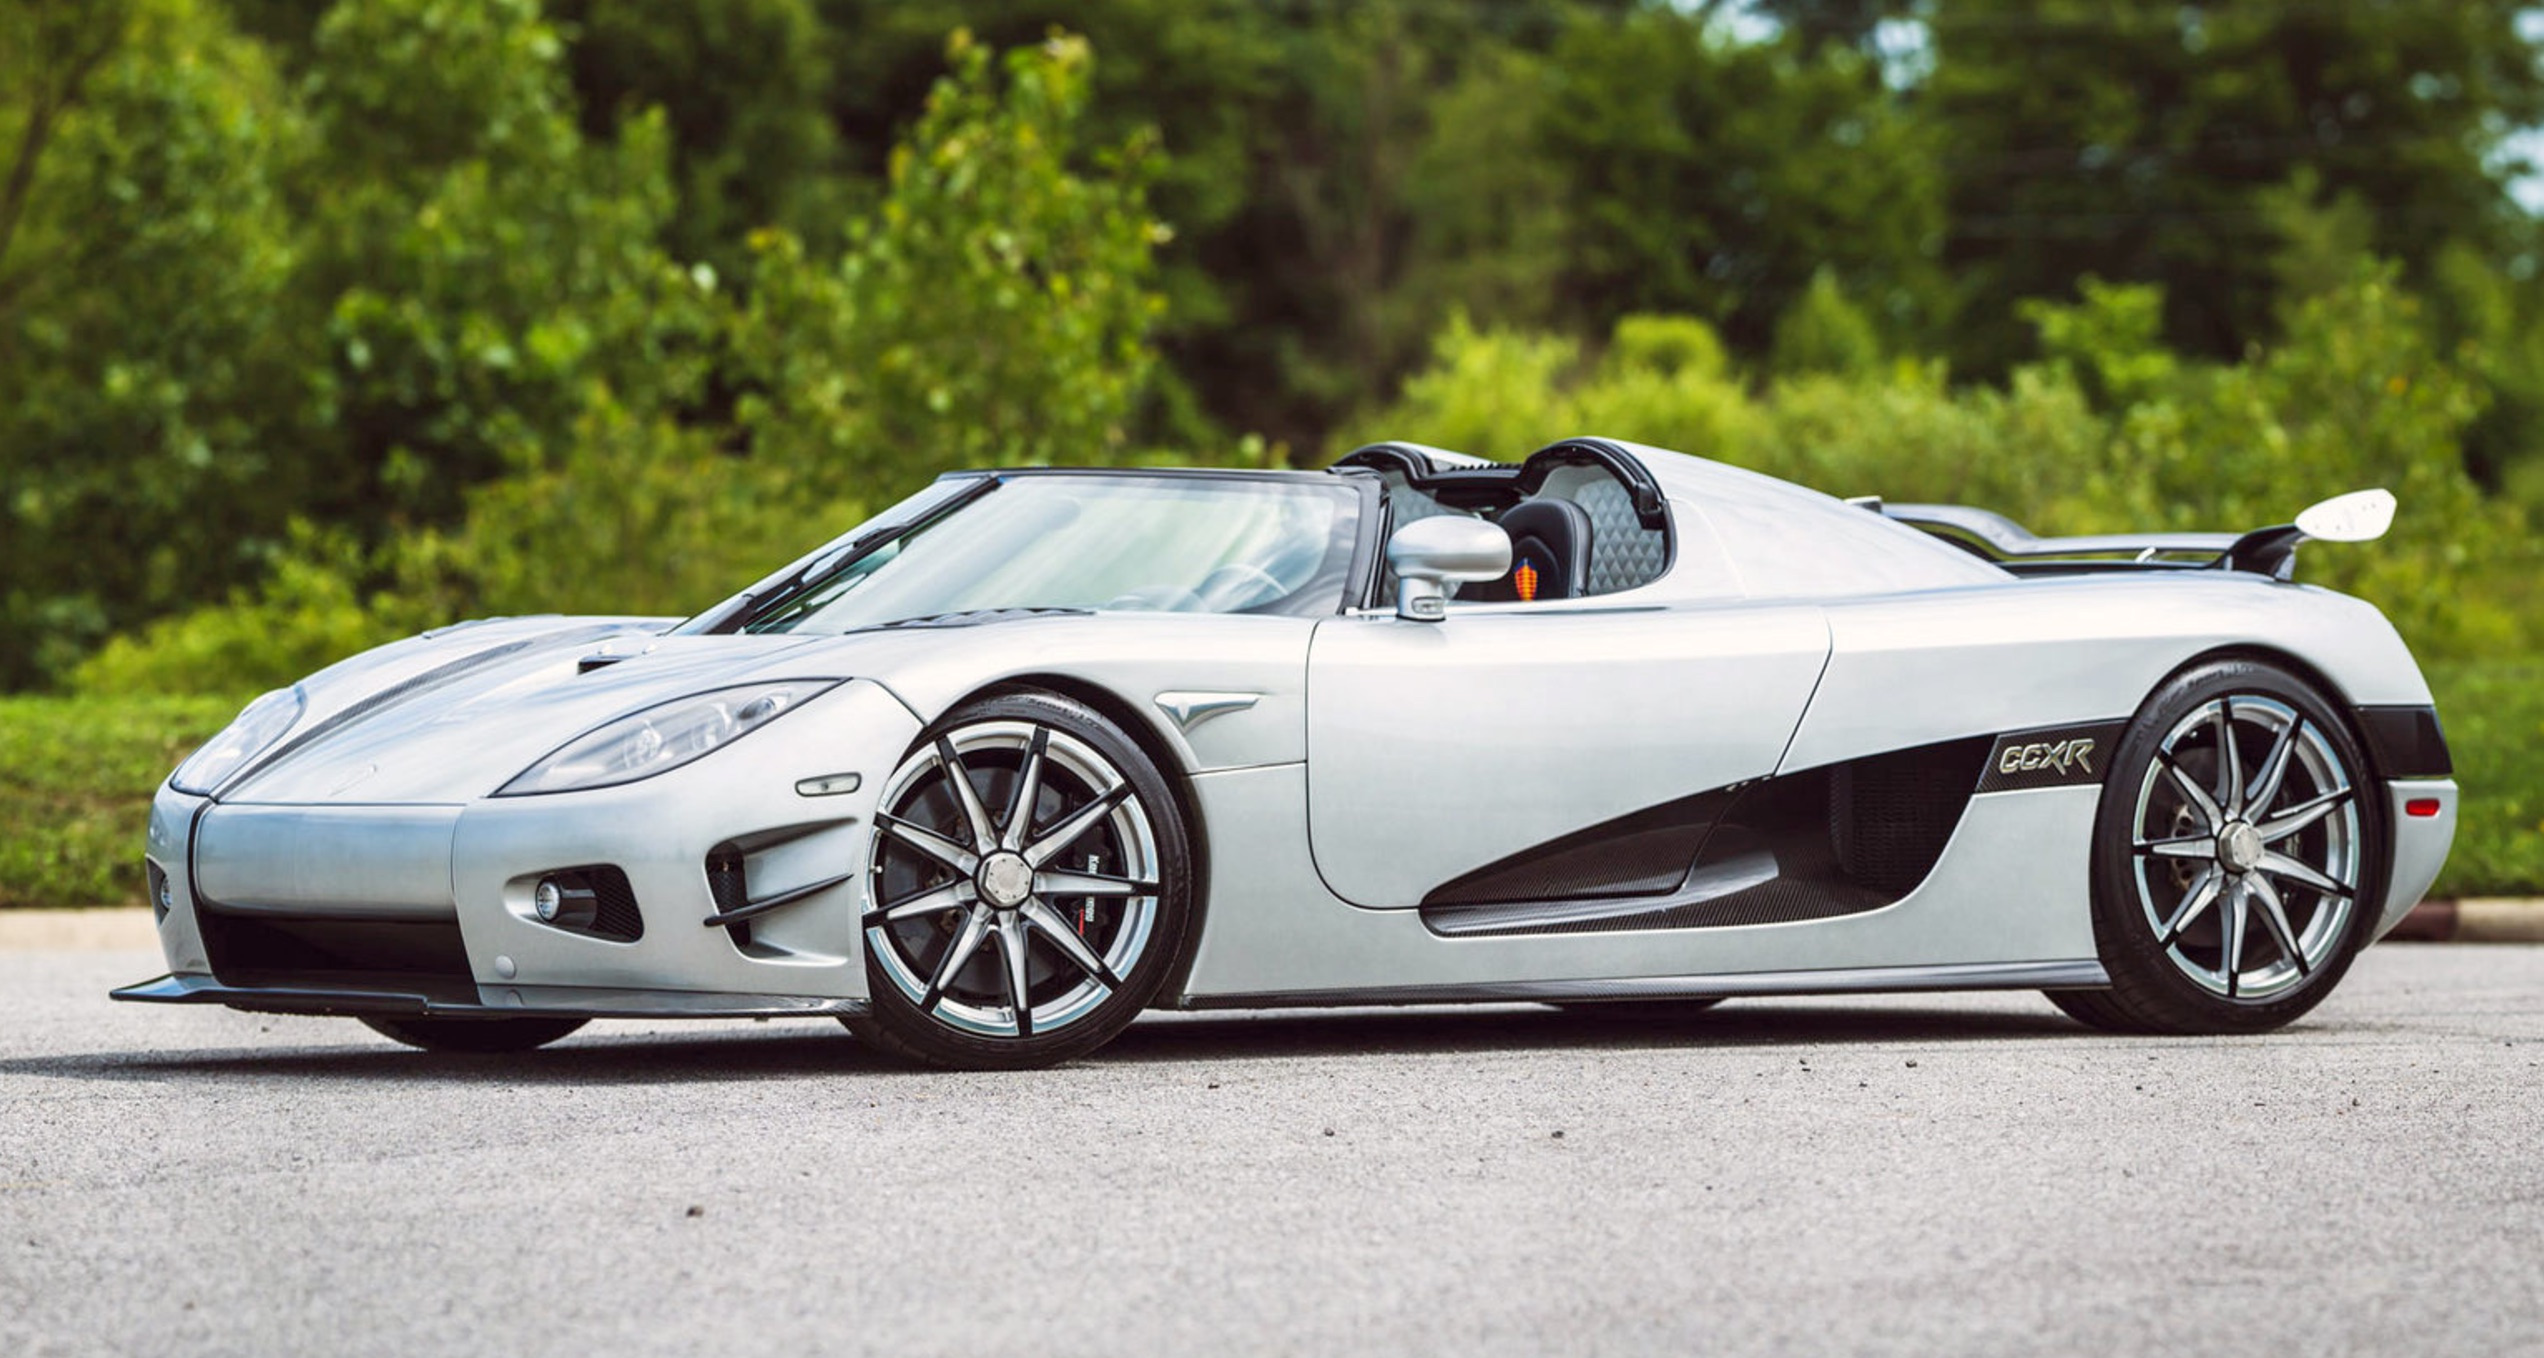 Cars For Uber >> Floyd Mayweather's $4.8M Koenigsegg CCXR Trevita heads to ...